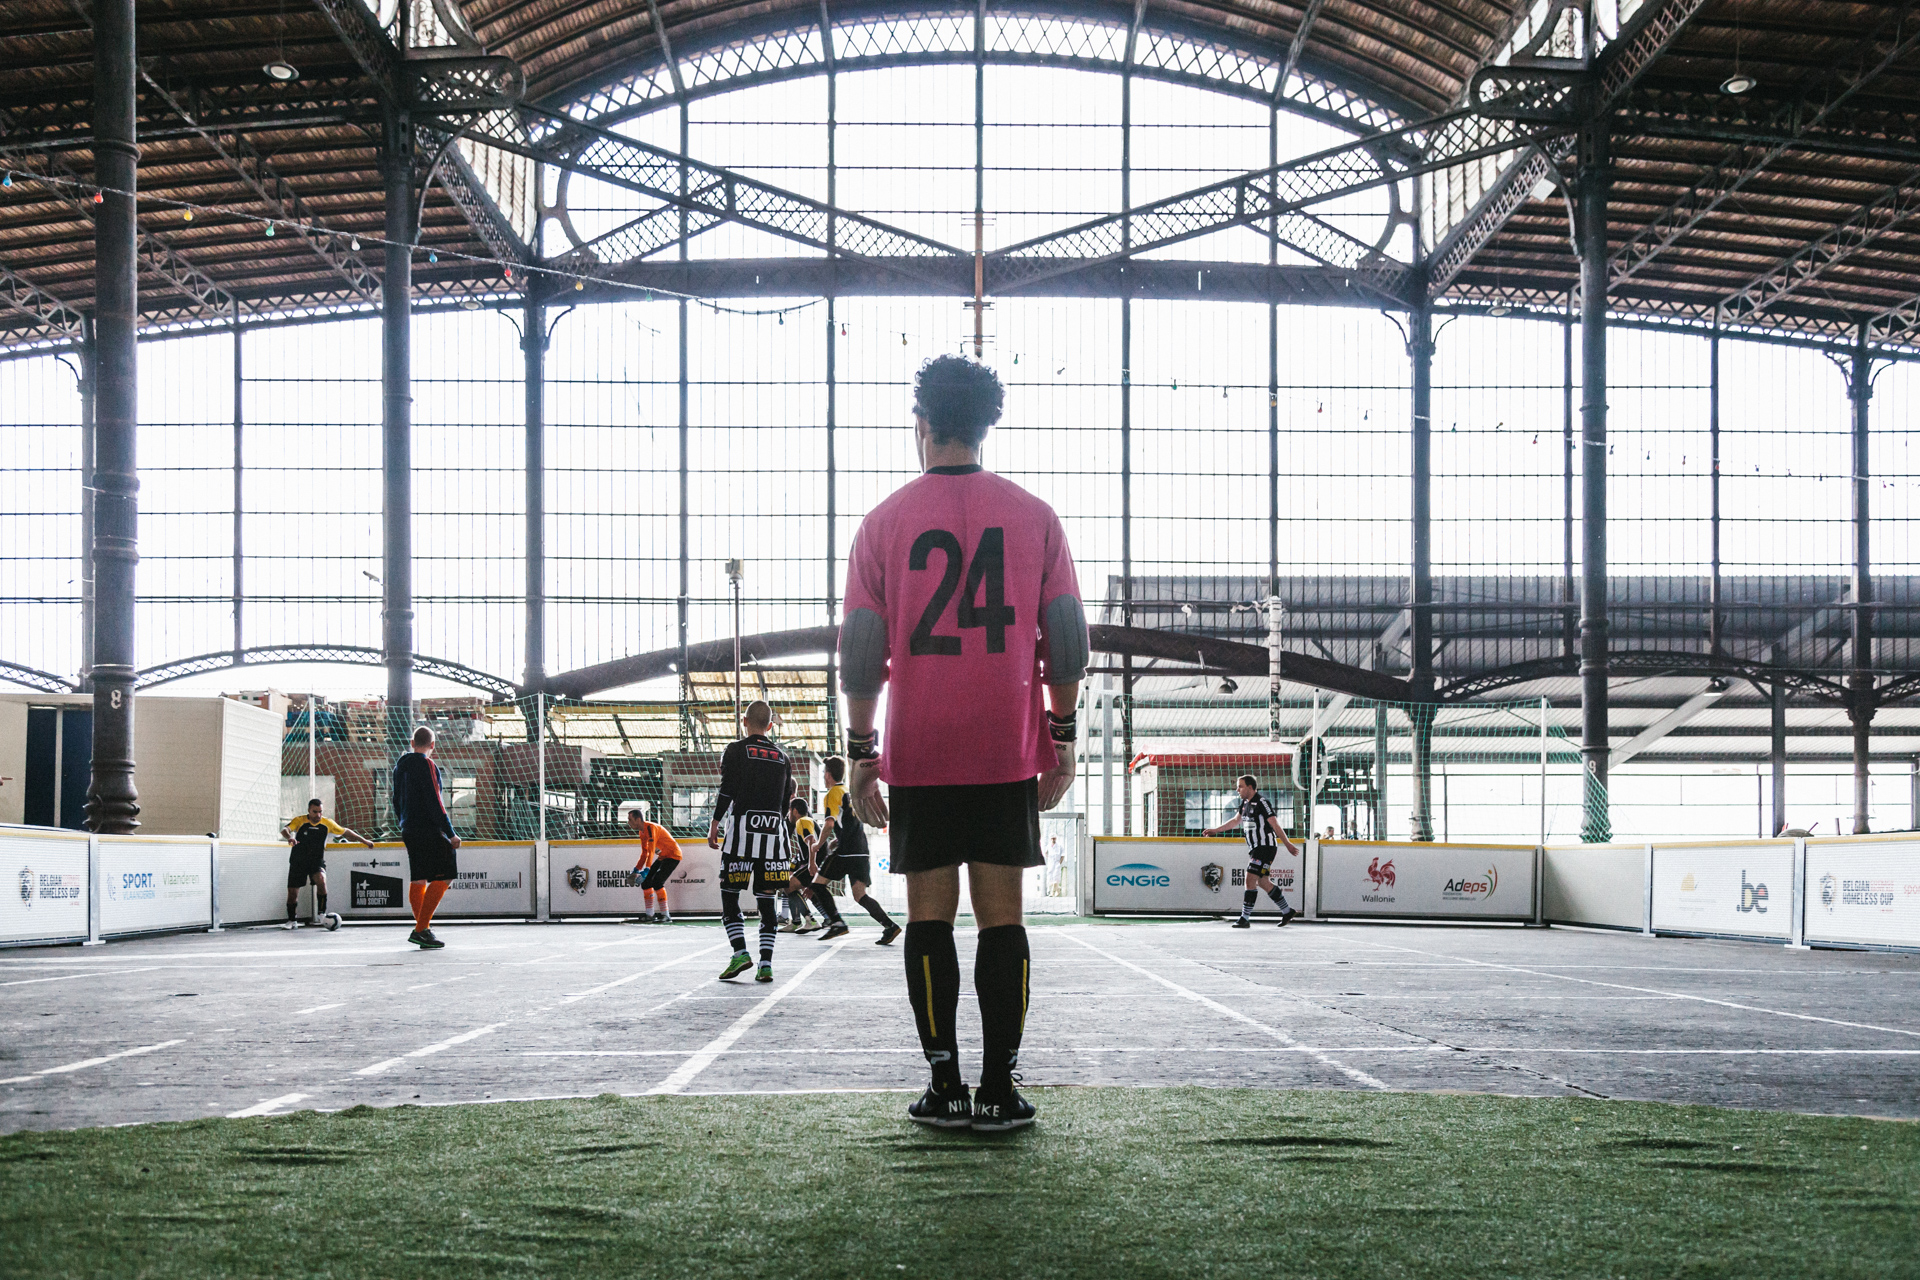 2016_BelgianHomelessCup_lores-8.jpg